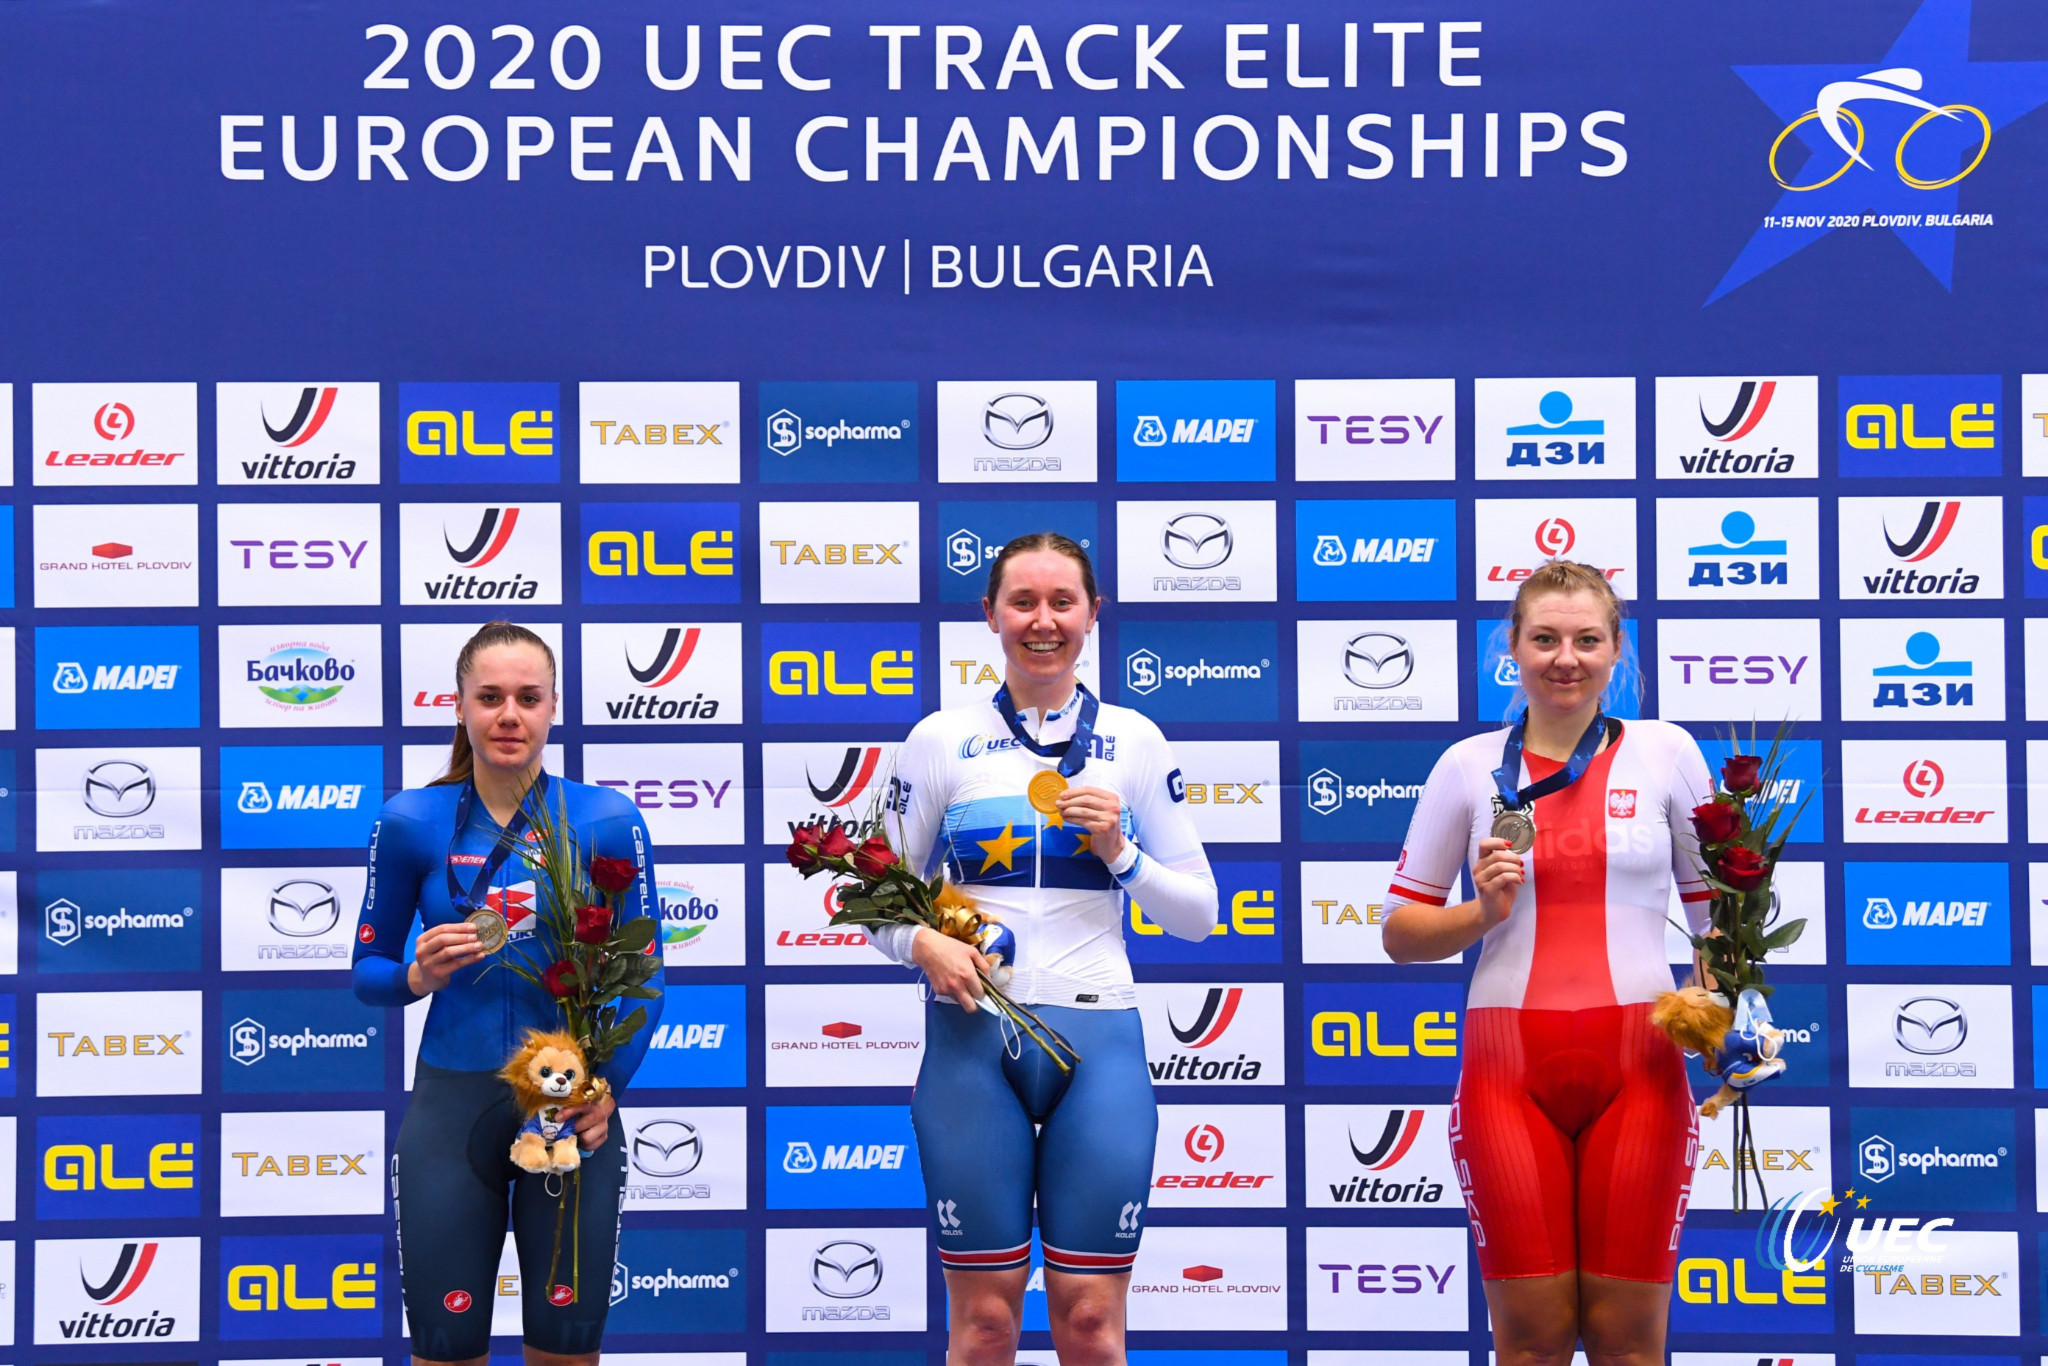 Britain retain place at top of UEC Elite Track European Championships medal table after Archibald gold